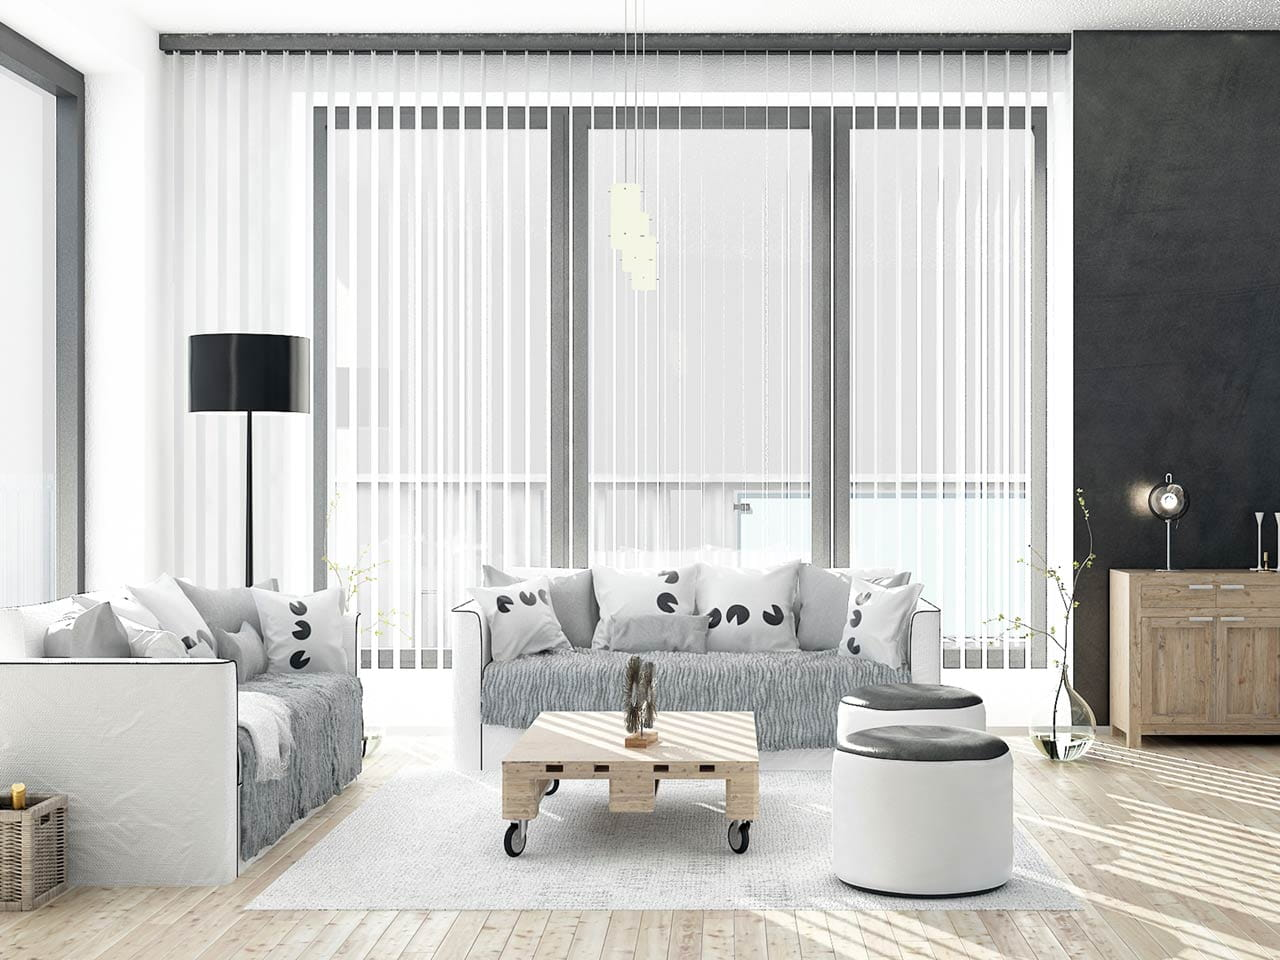 Privacy blinds for windows - Vertical Blinds Are Often Used On French Windows For Privacy